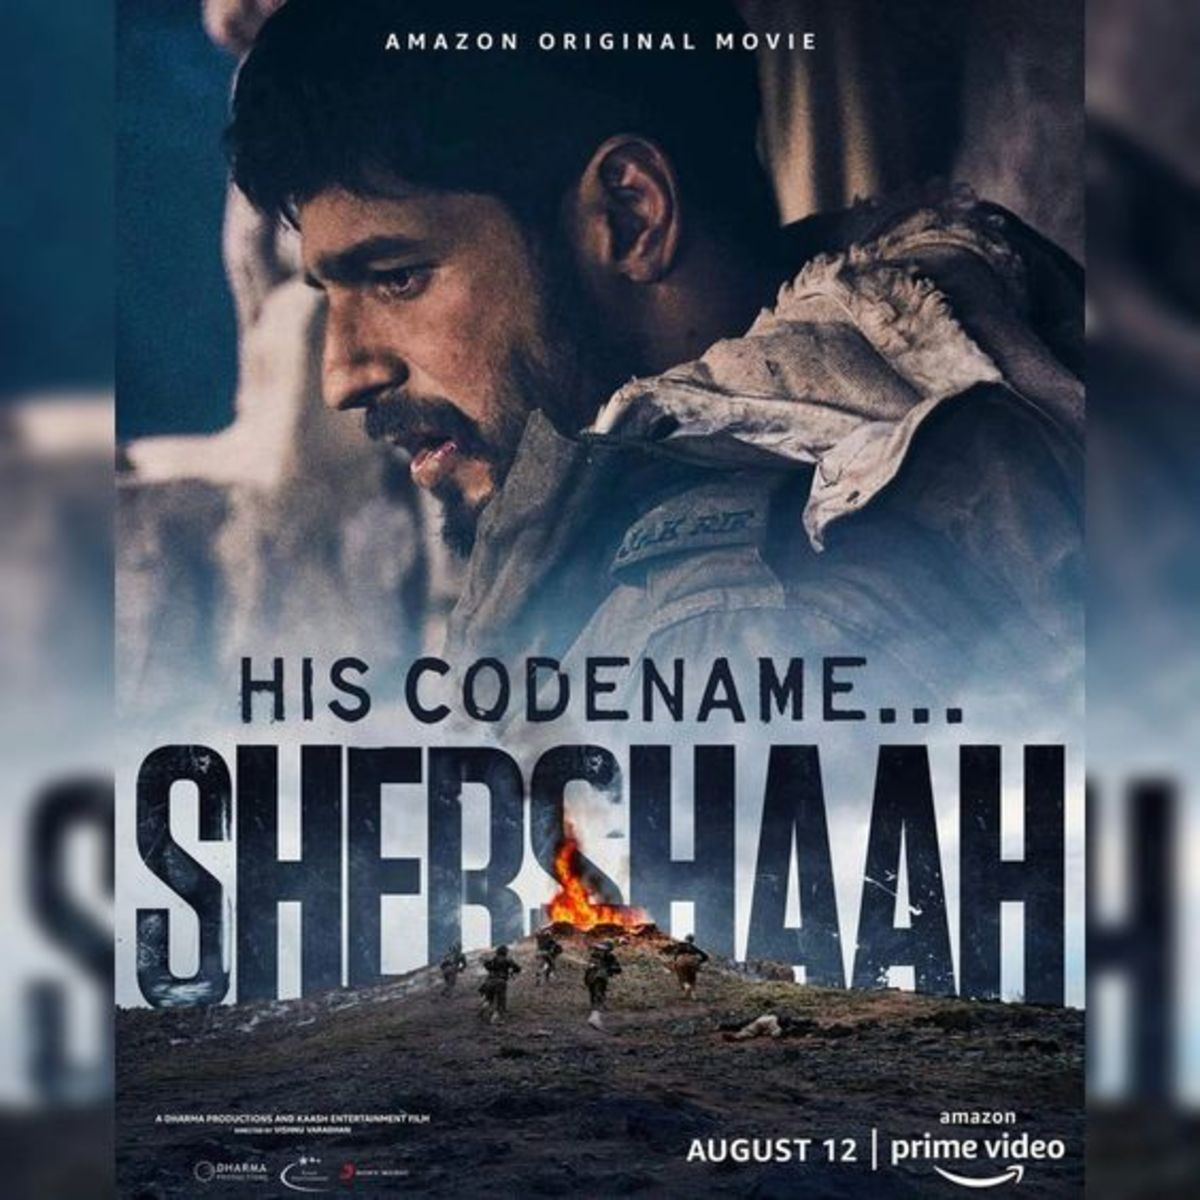 Though 'Shershaah' is a war film, it is based on the life of Captain Vikram Batra who sacrificed his life in the Kargil war and brought victory to the country.